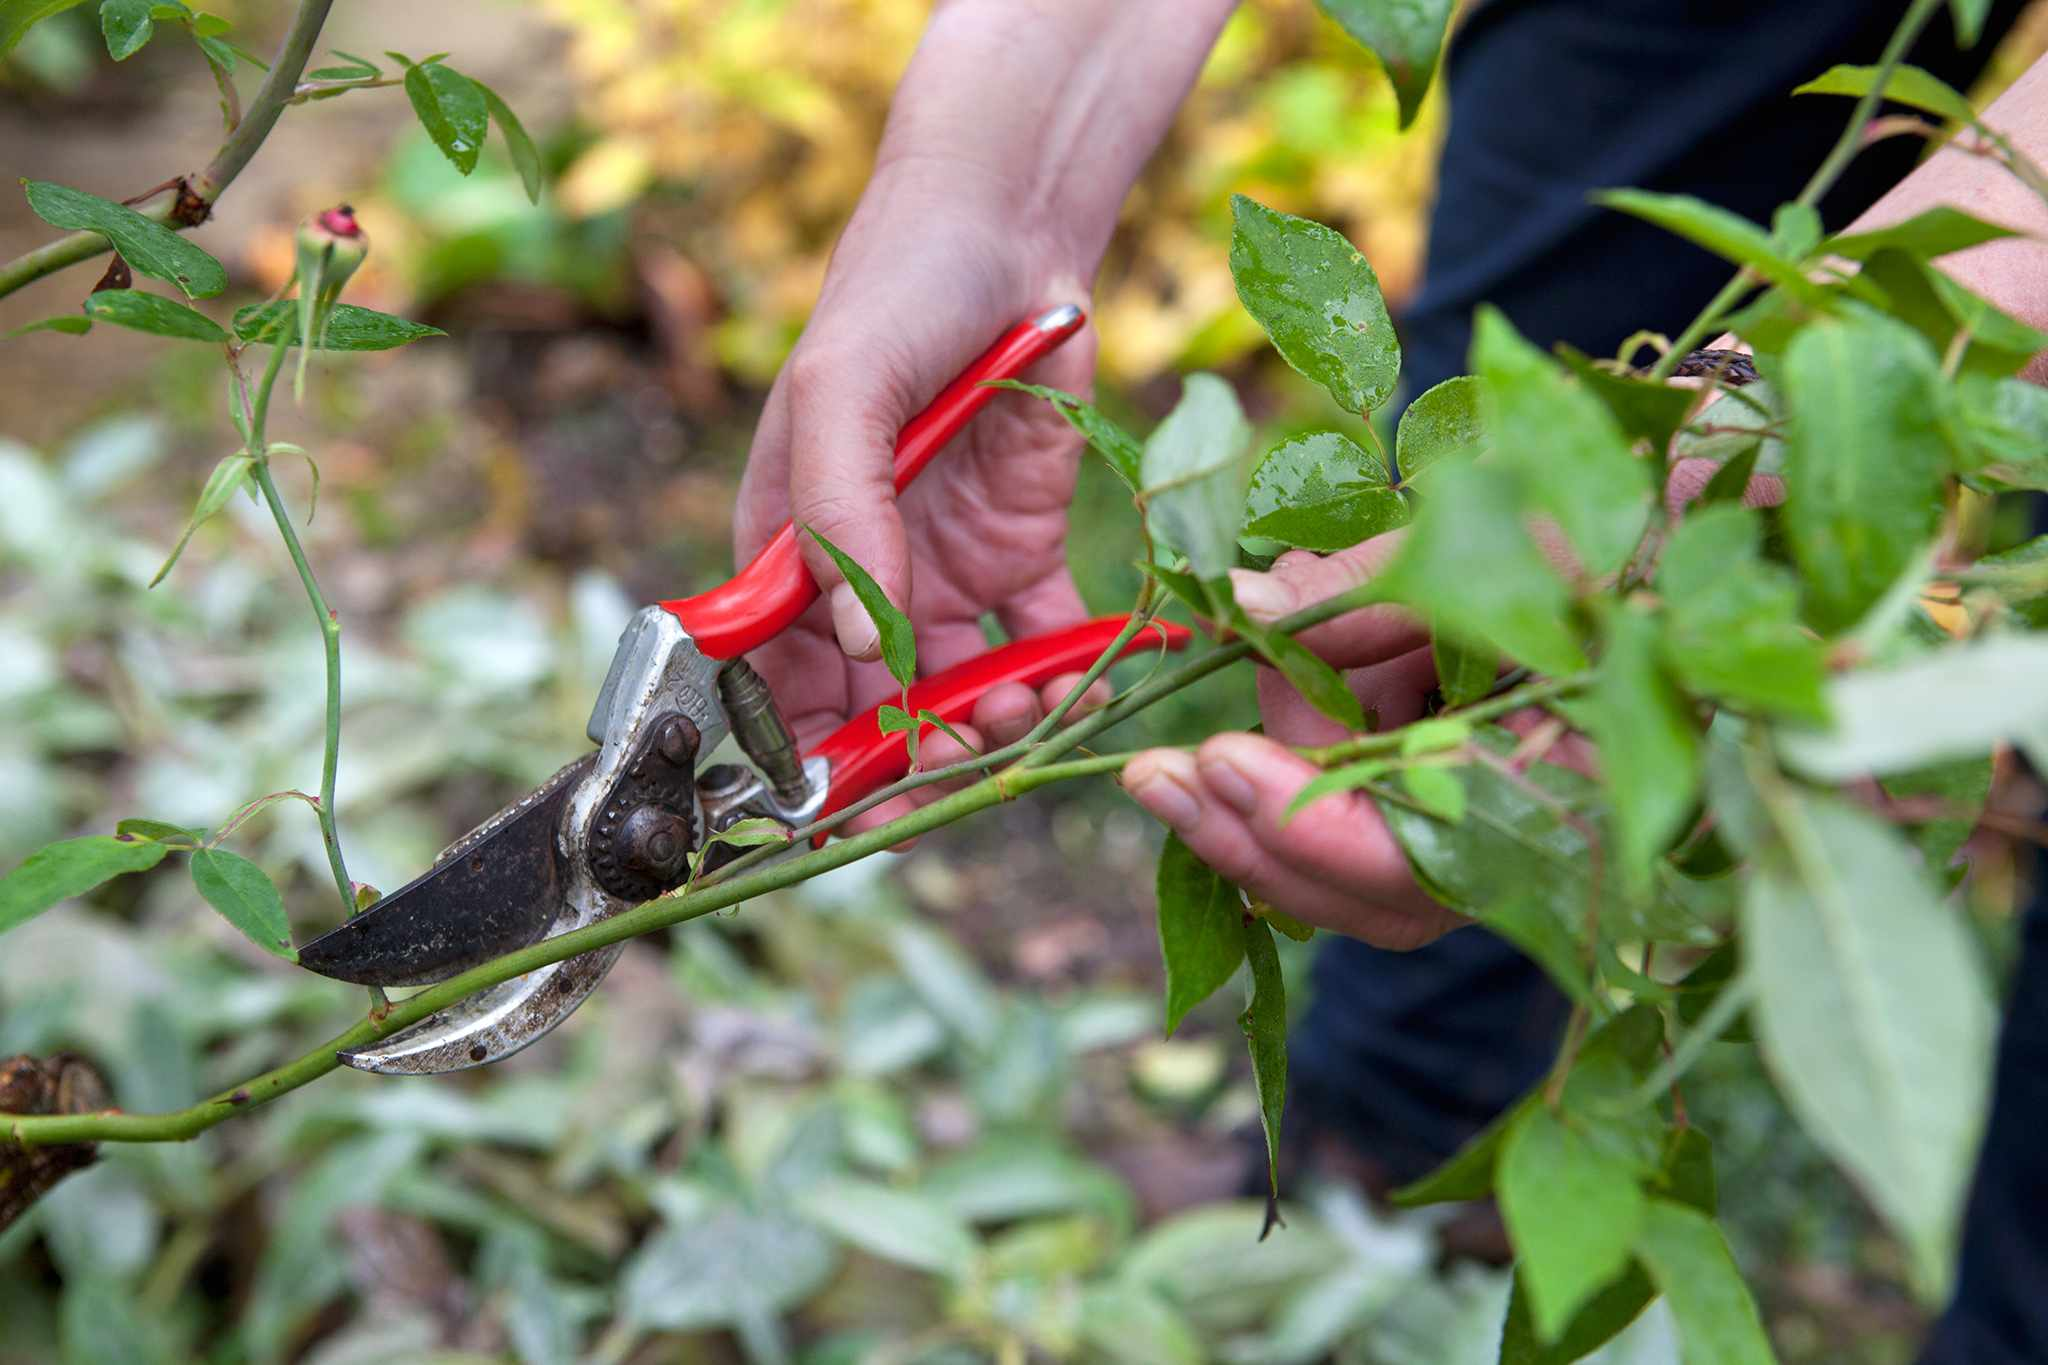 Pruning roses in autumn